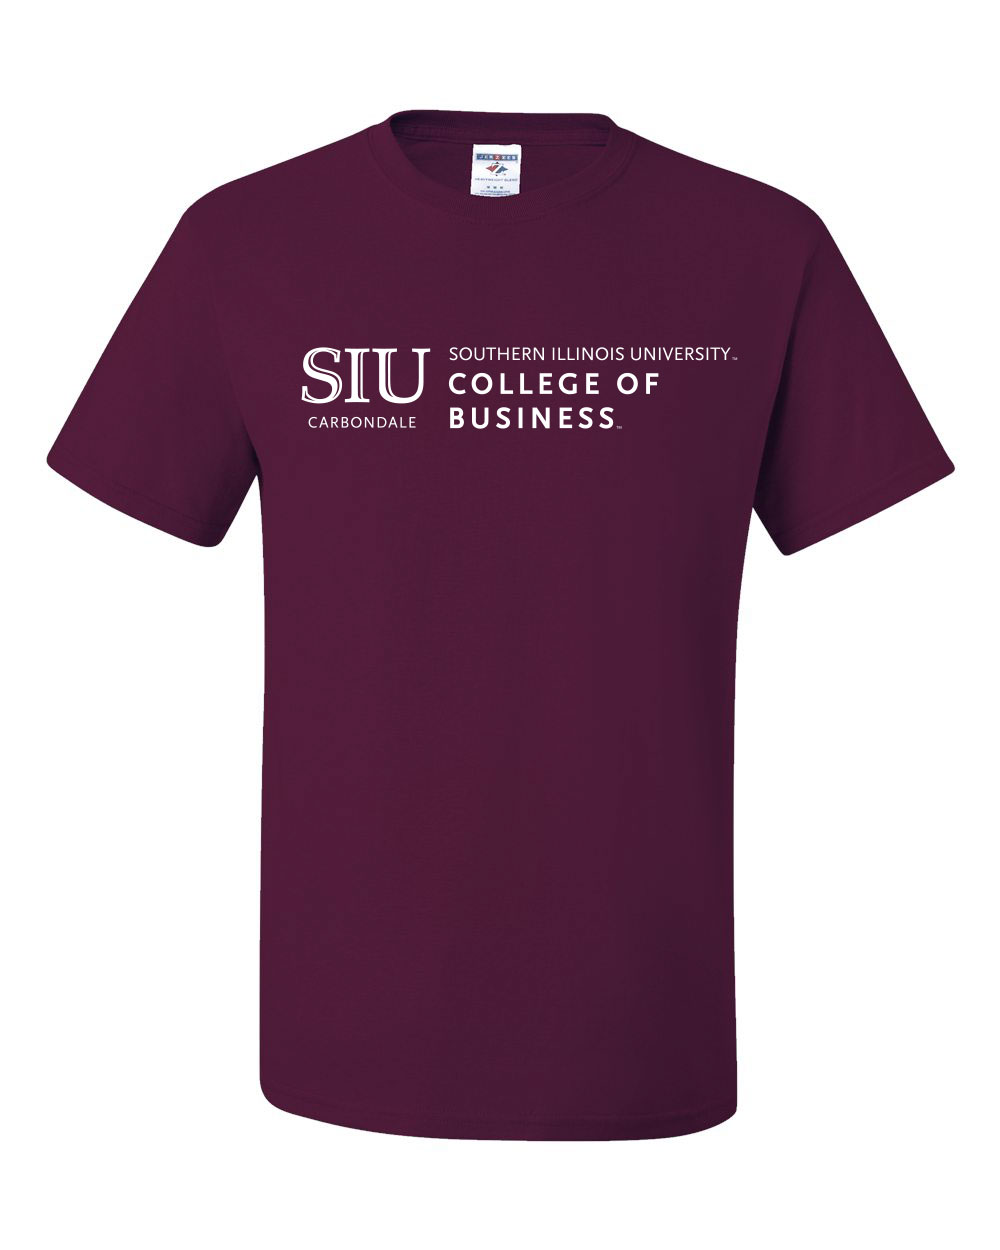 Image for the CT® SIU COLLEGE OF BUSINESS T-SHIRT product